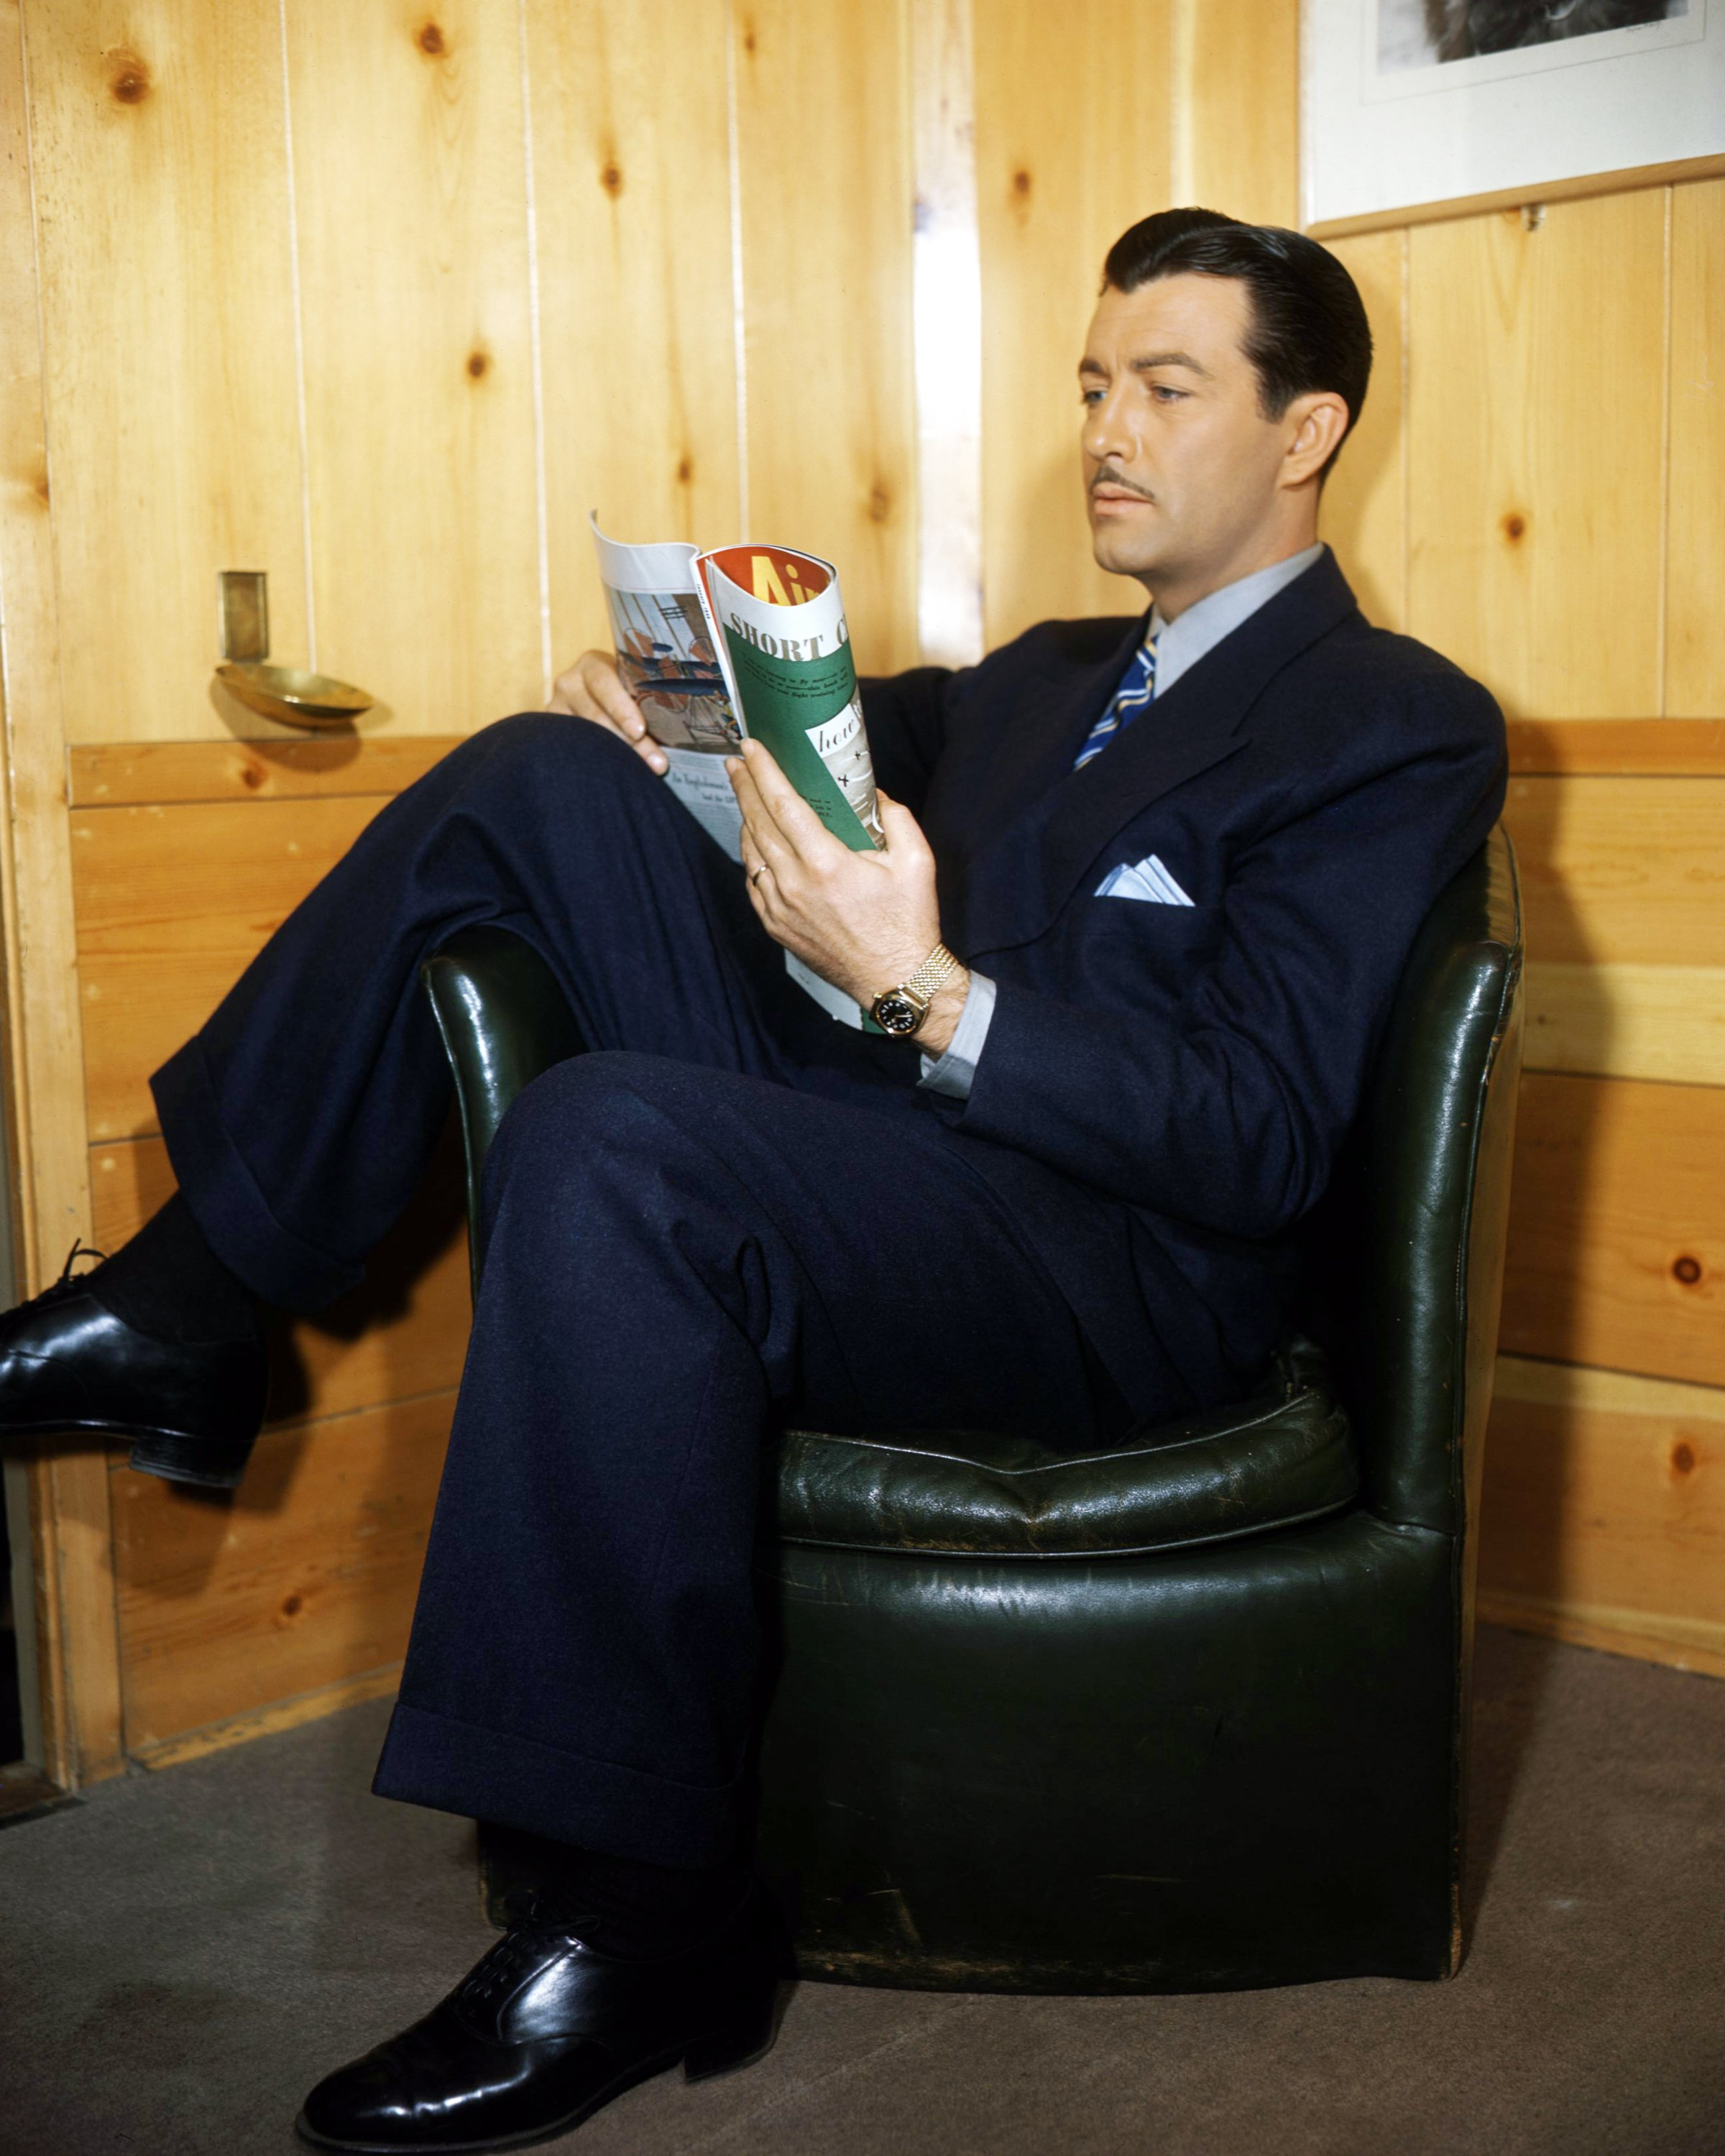 American actor Robert Taylor (1911 - 1969) sitting in an armchair and reading a magazine, circa 1940. | Source: Getty Images